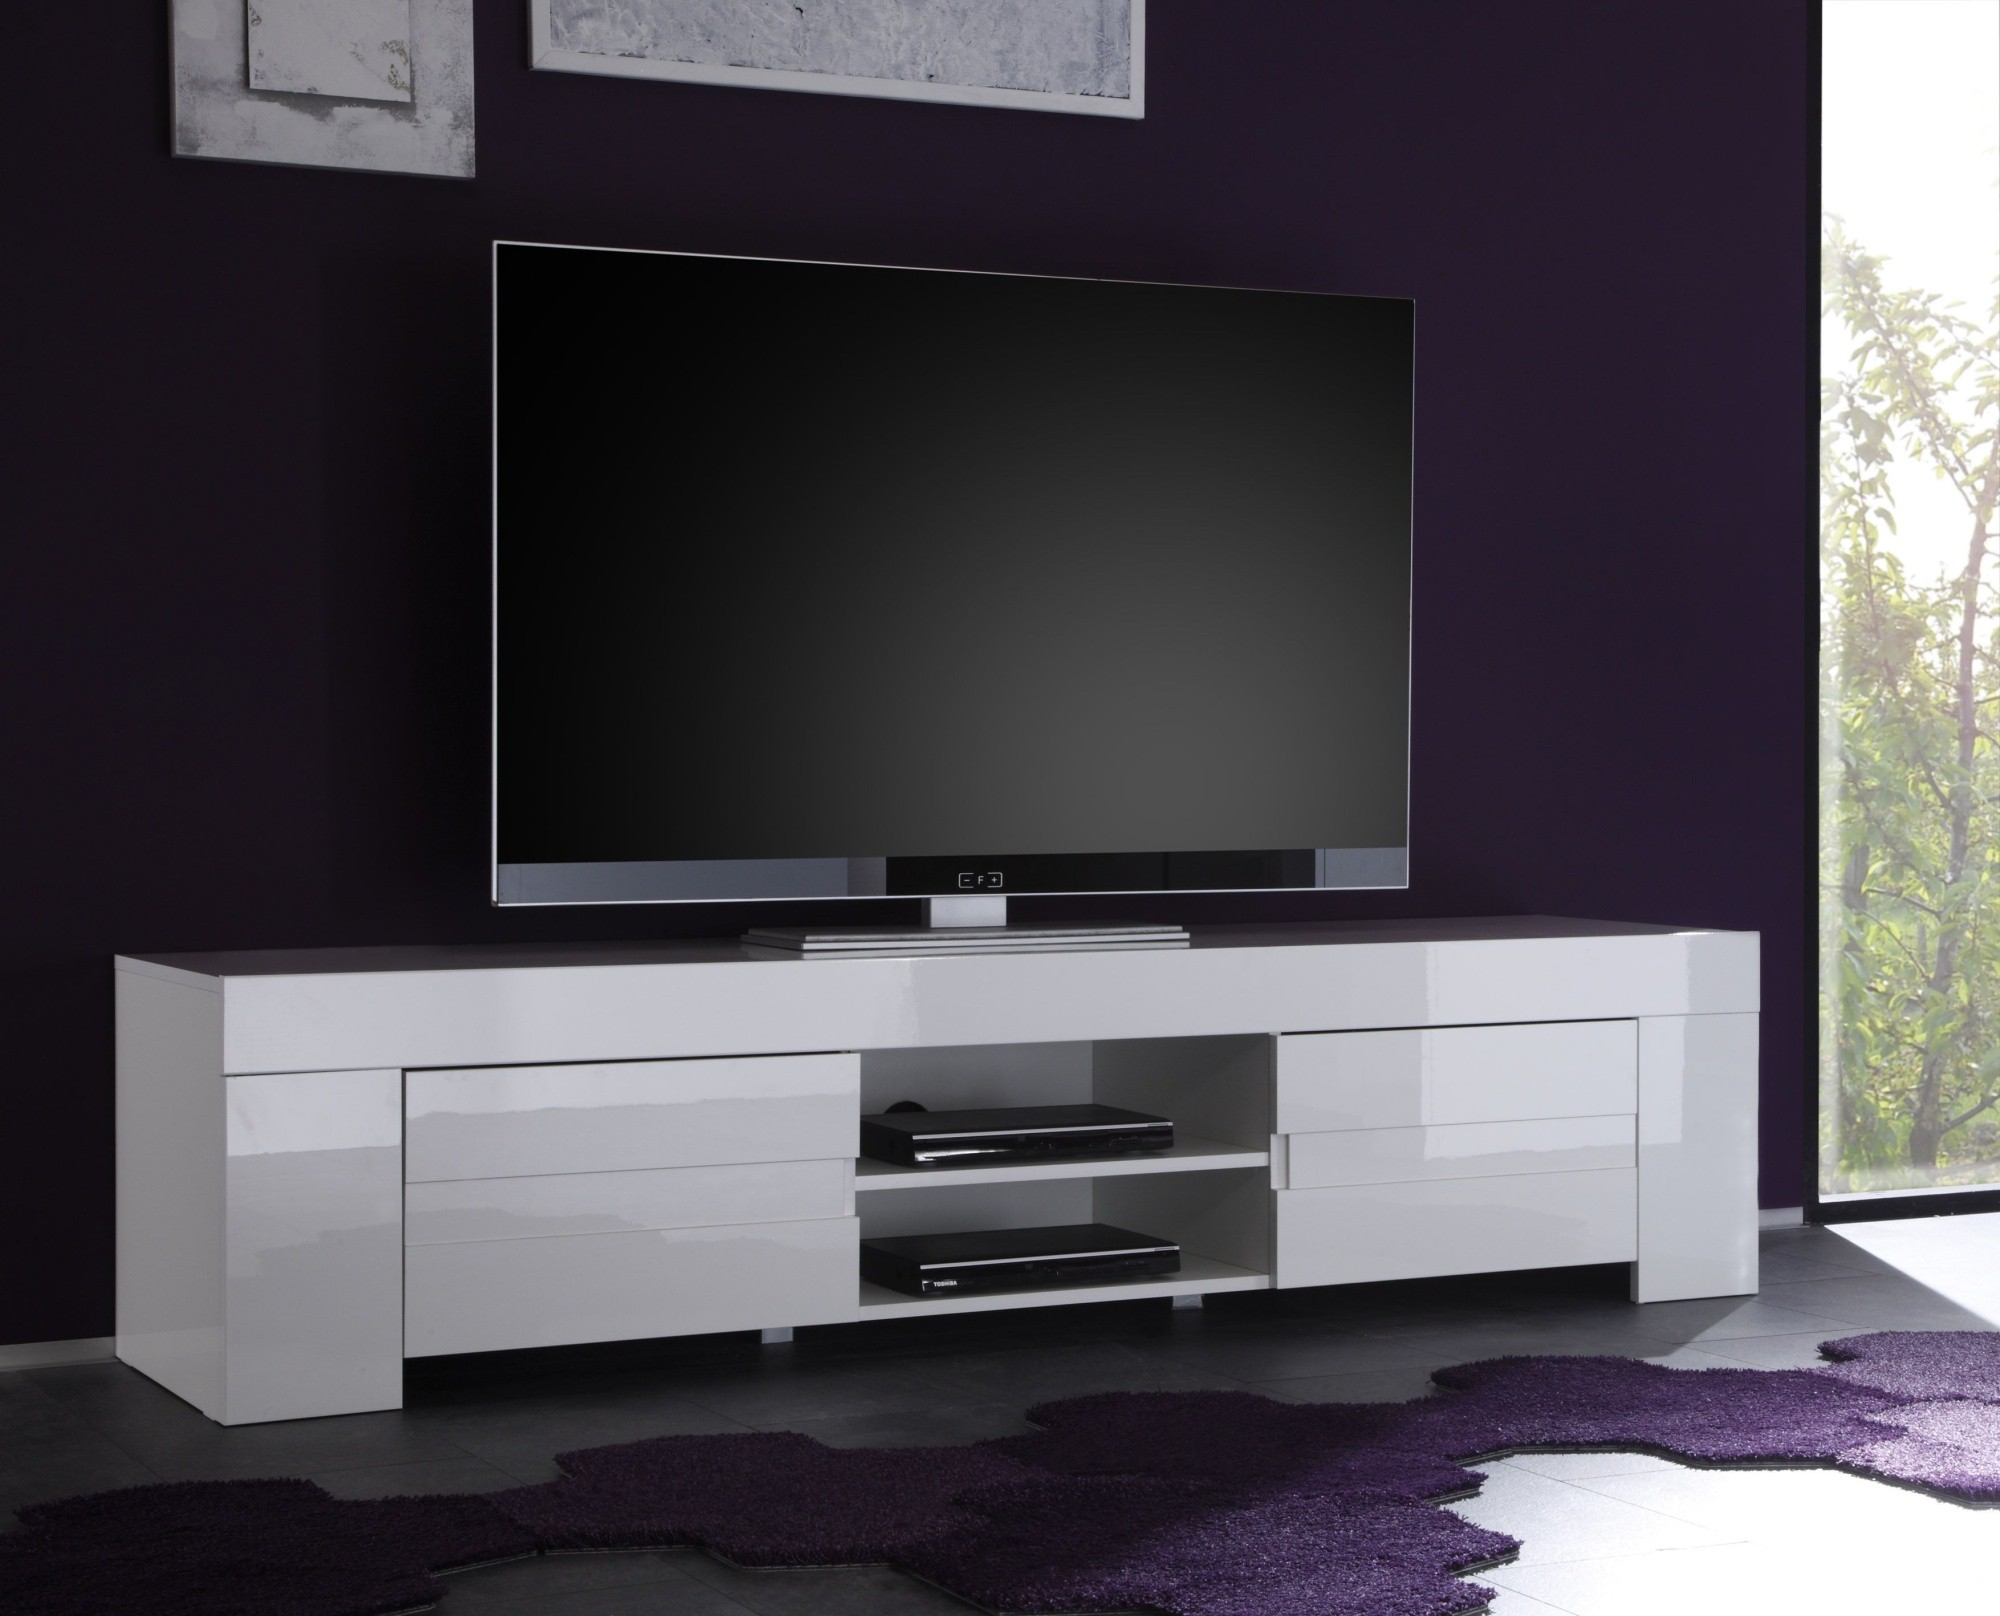 solde meuble tv id es de d coration int rieure french. Black Bedroom Furniture Sets. Home Design Ideas